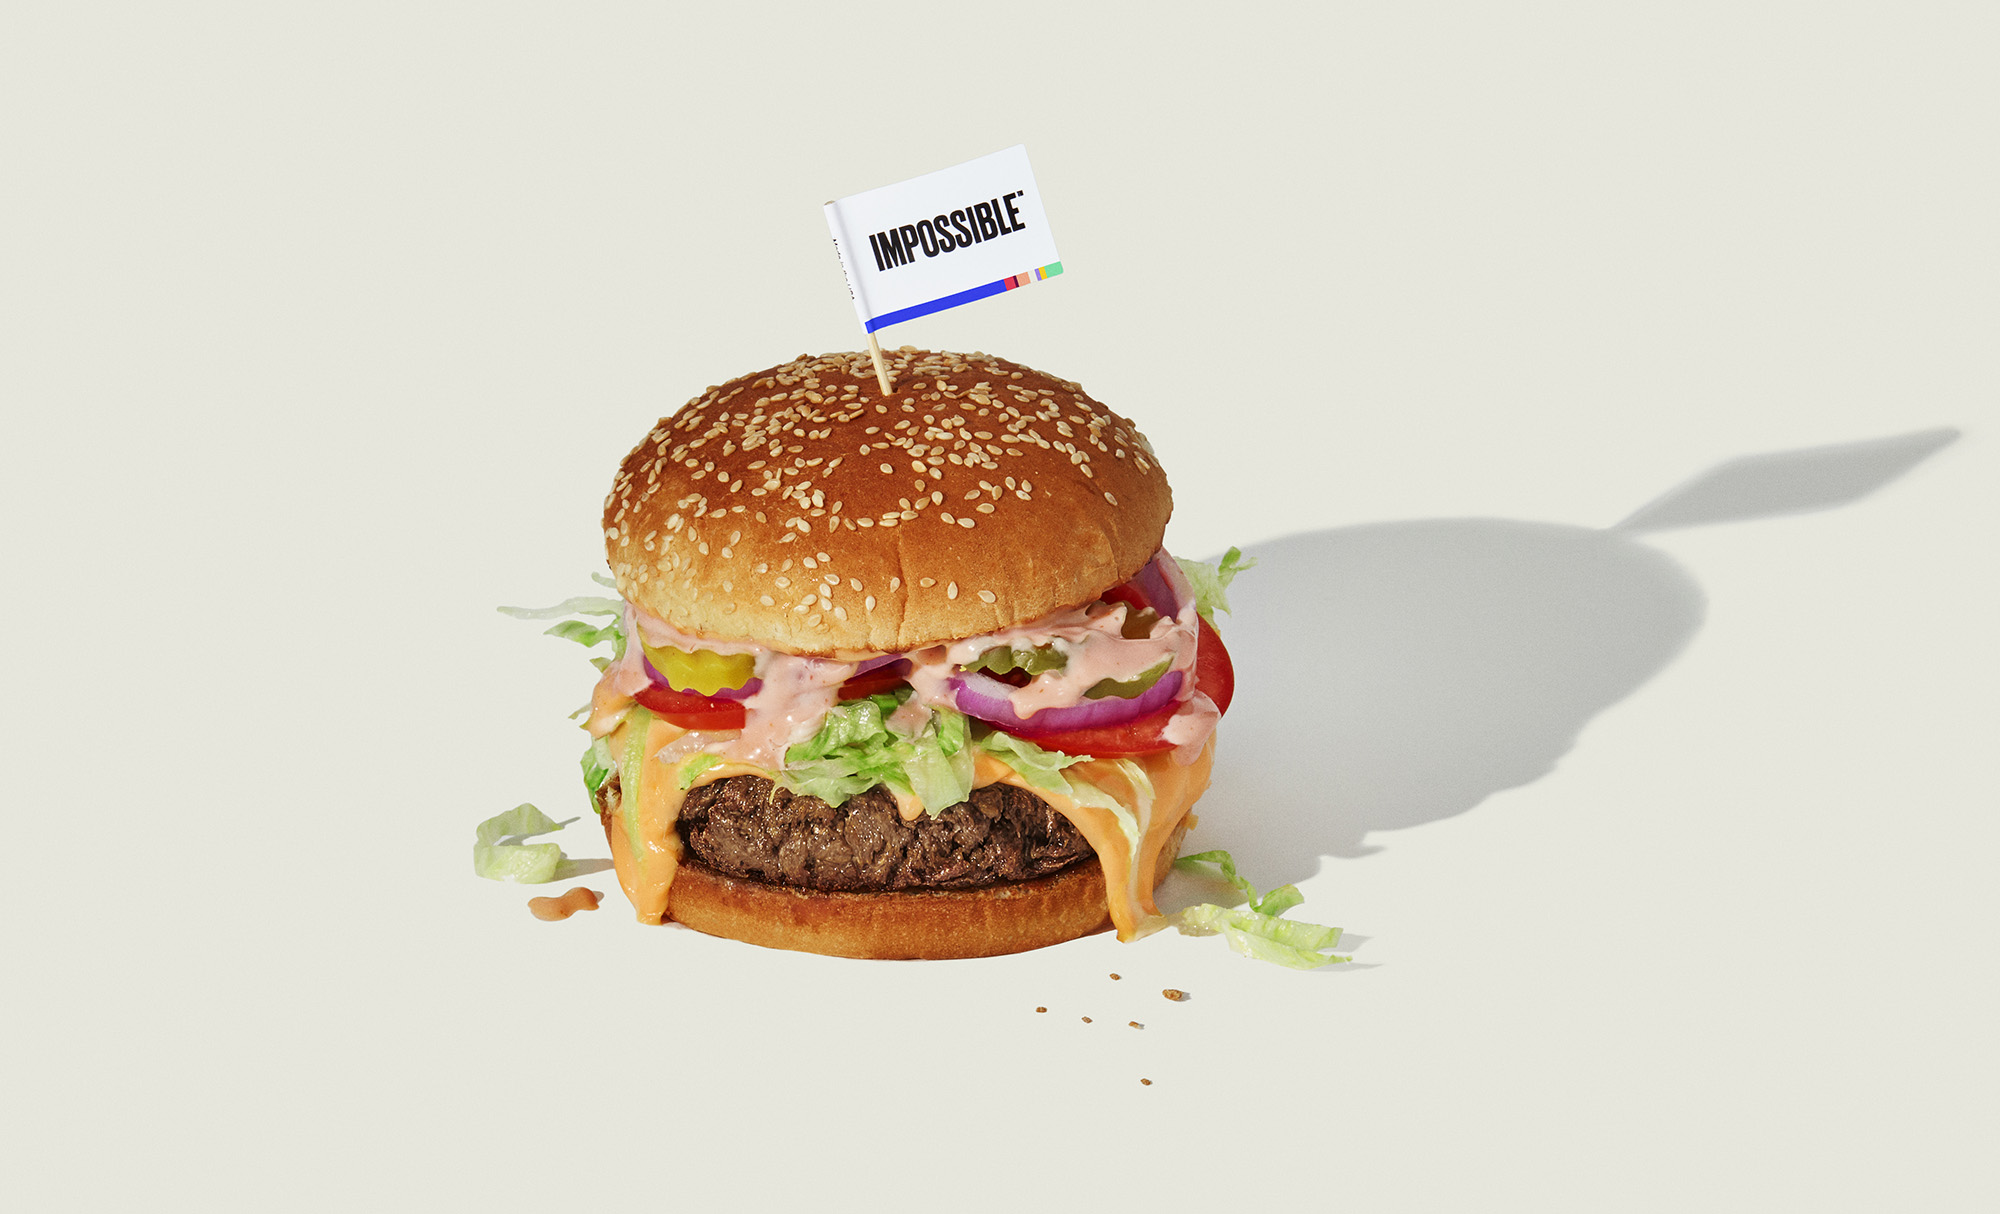 It isn't just lab-based beef that can be grown. Cellular-agriculture labs will enable us to grow boneless bluefin tuna and other fish. Image courtesy of Impossible Foods. — Revolution Watch